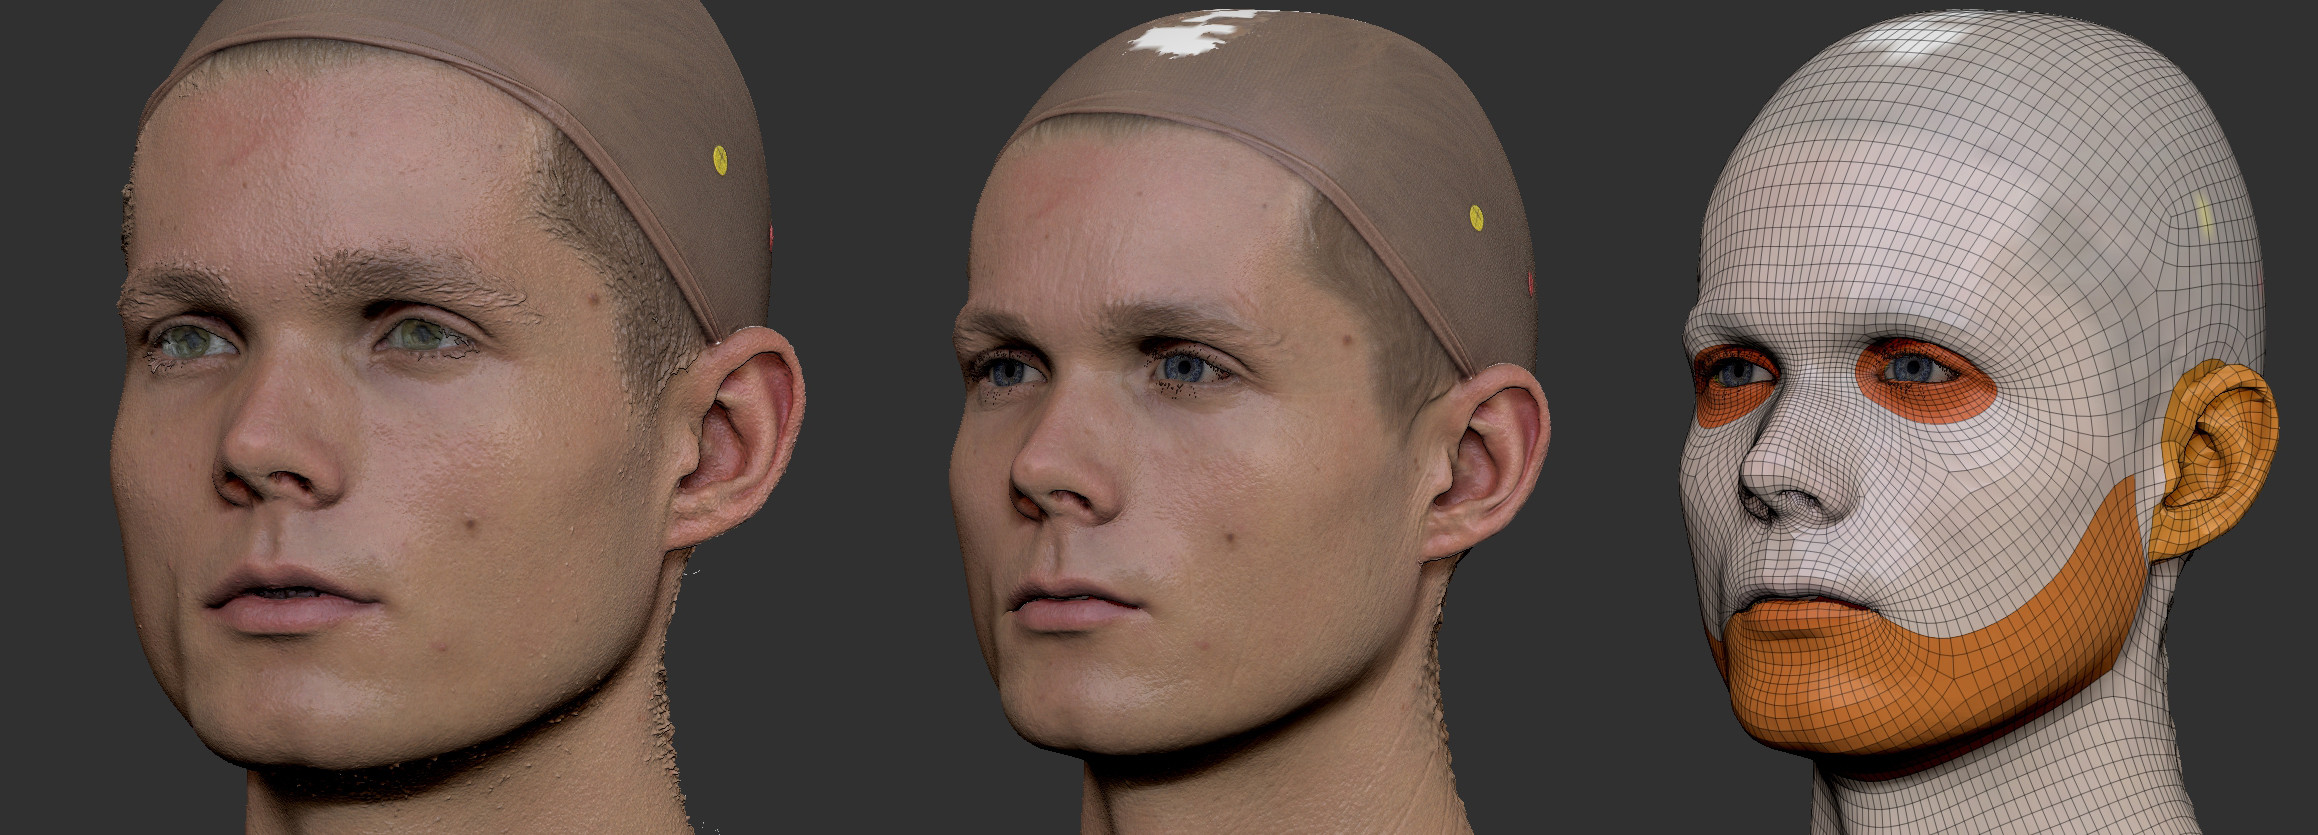 Head was a photogrammetry project from a series of pictures acquired from 3DScanStore. Pictures were processed in Metashape, cleaned up in Zbrush and adjusted to fit a general face topology